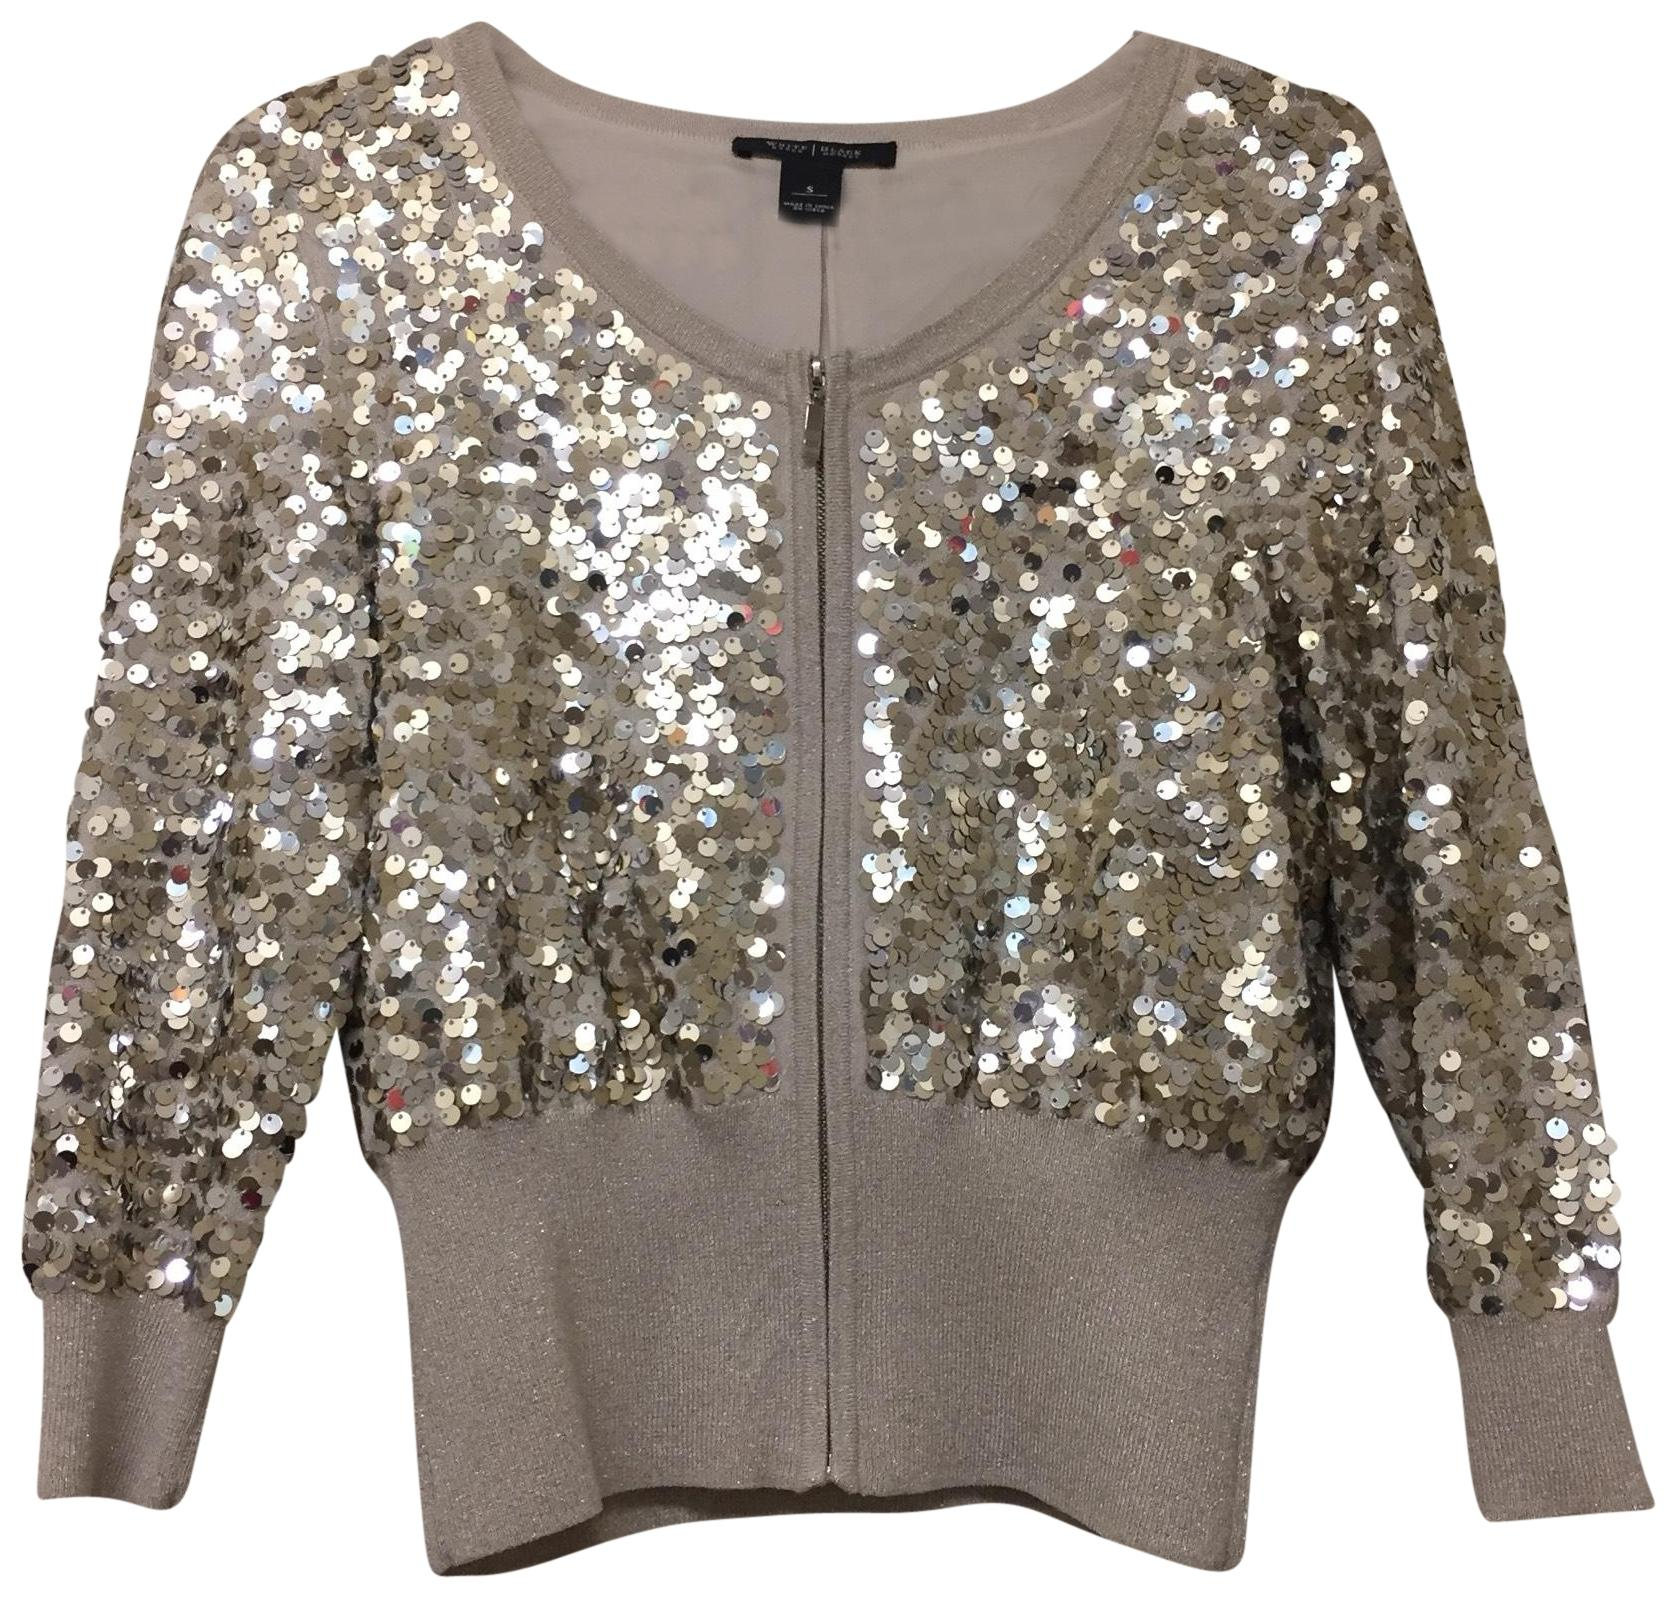 Sequin Cardigan white house | black market cardigan ... XNBZQQK